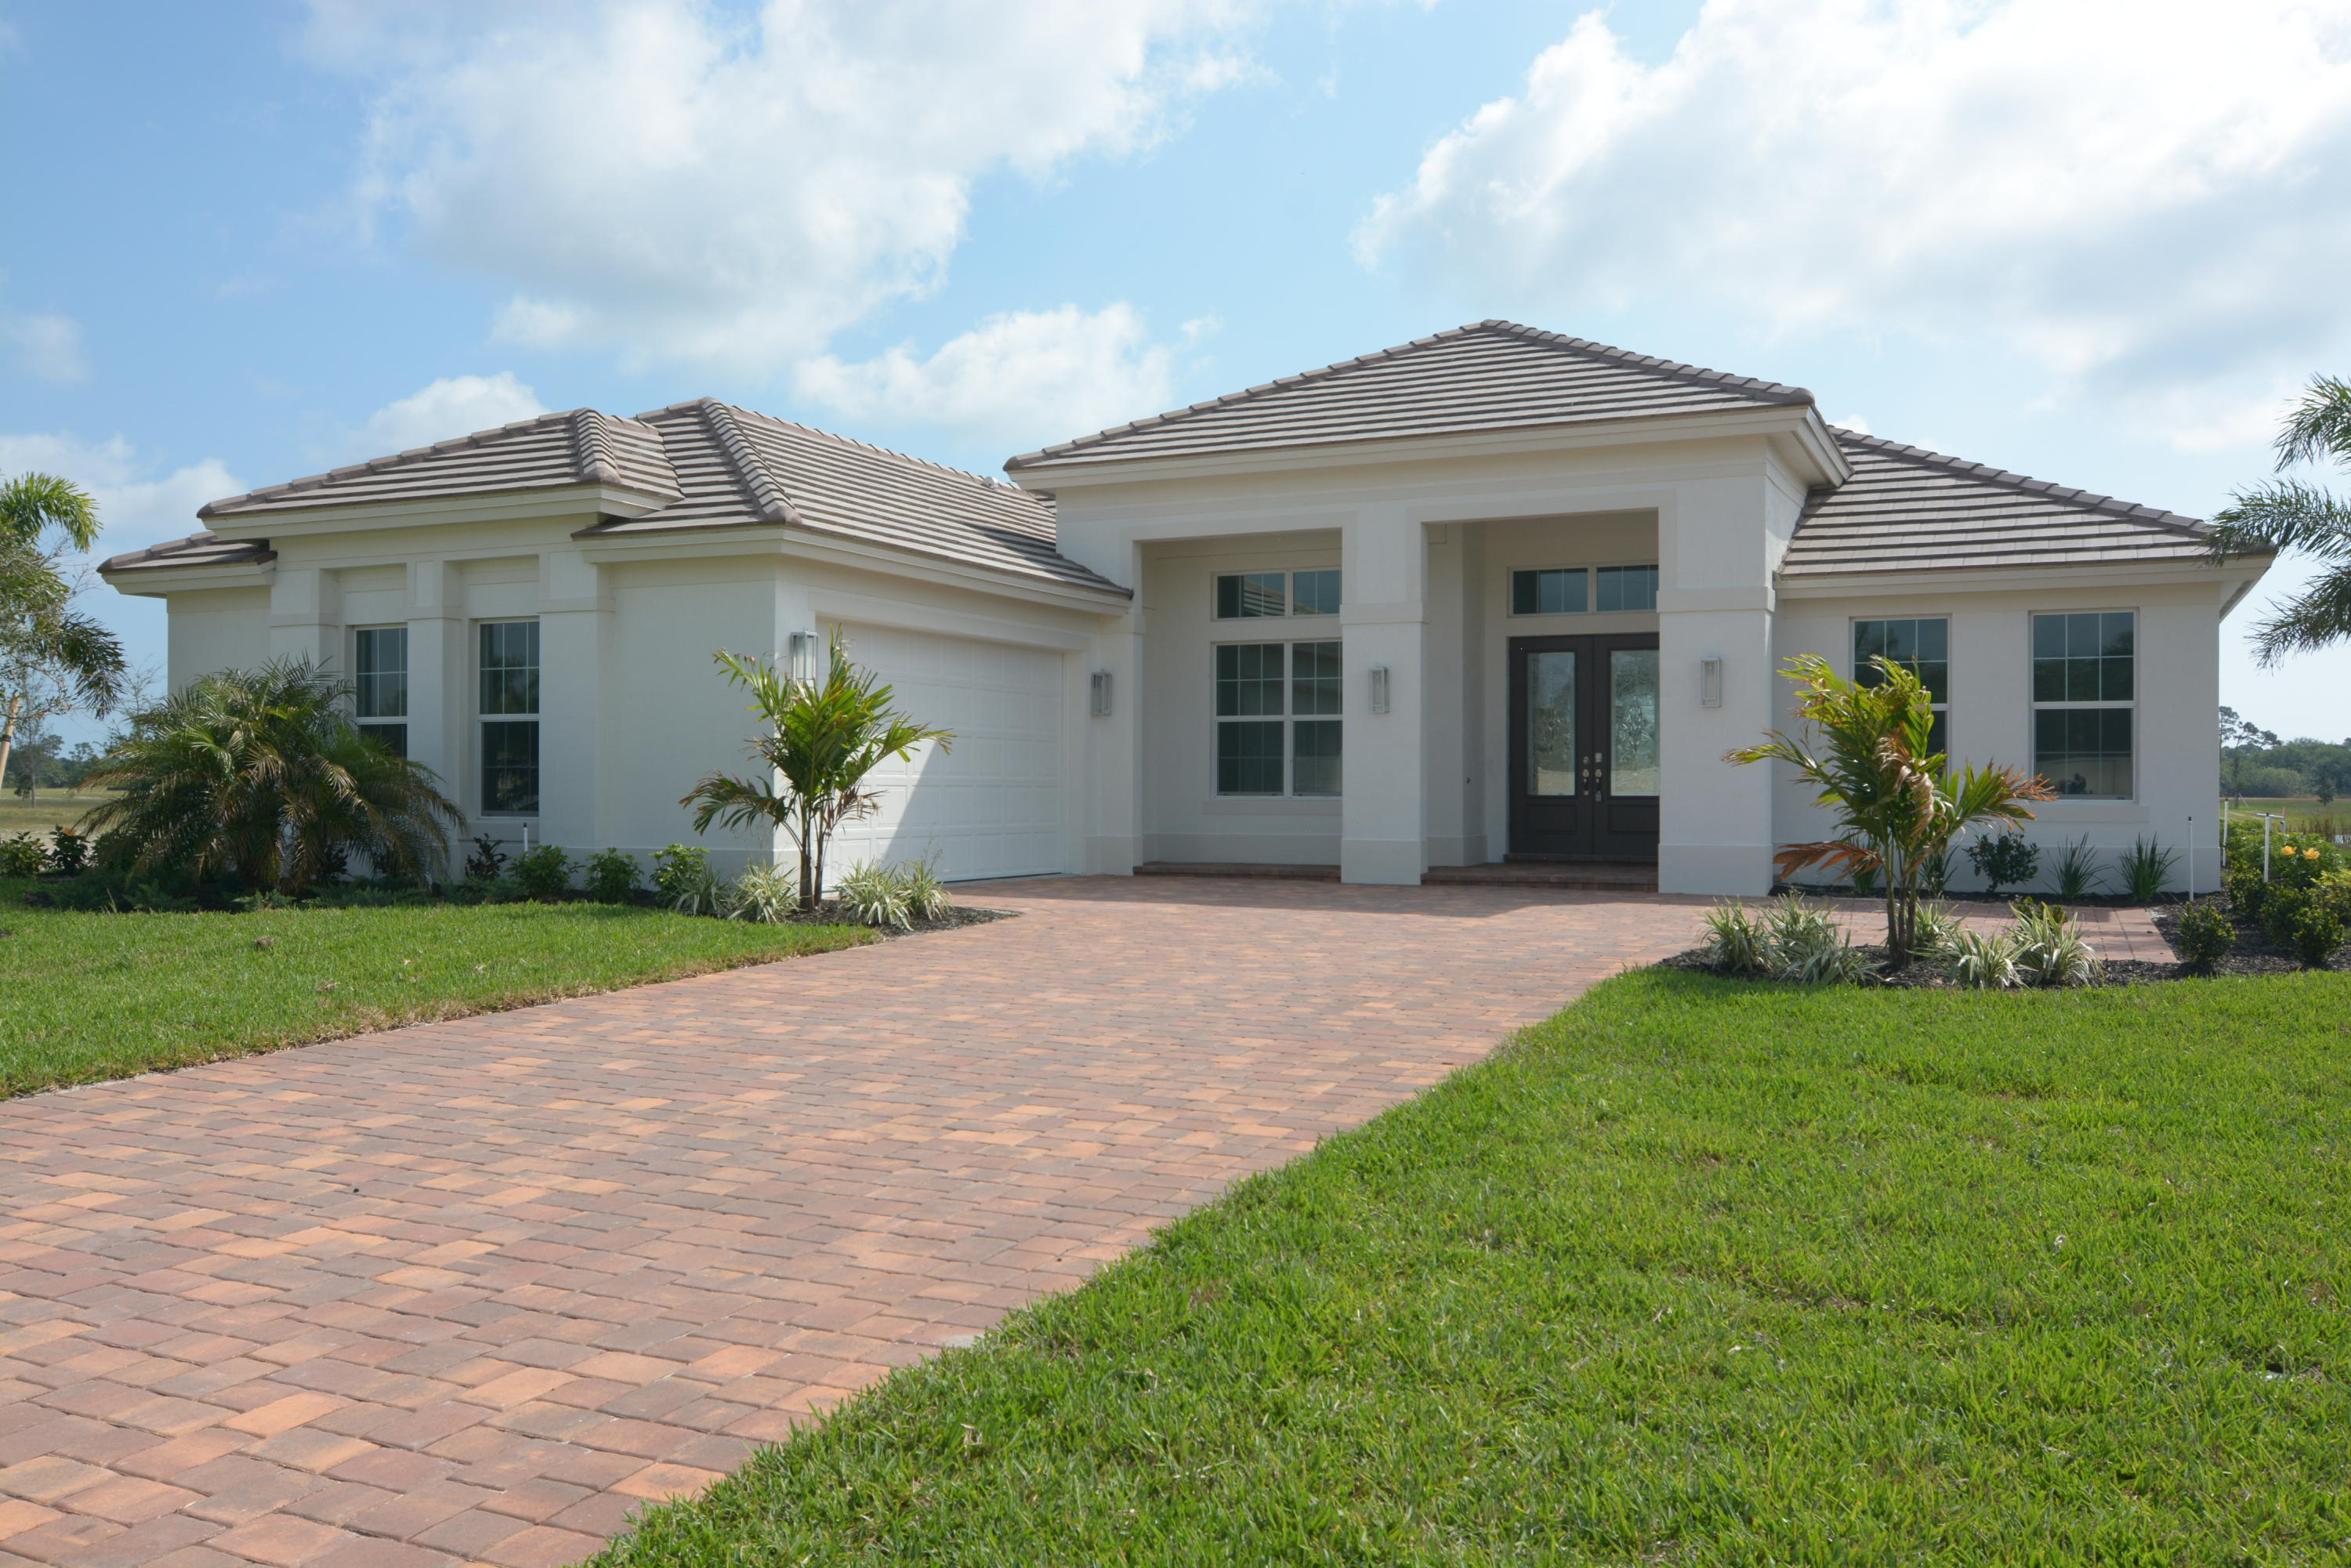 Photo of 5800 Palmetto Preserve Road, Vero Beach, FL 32967